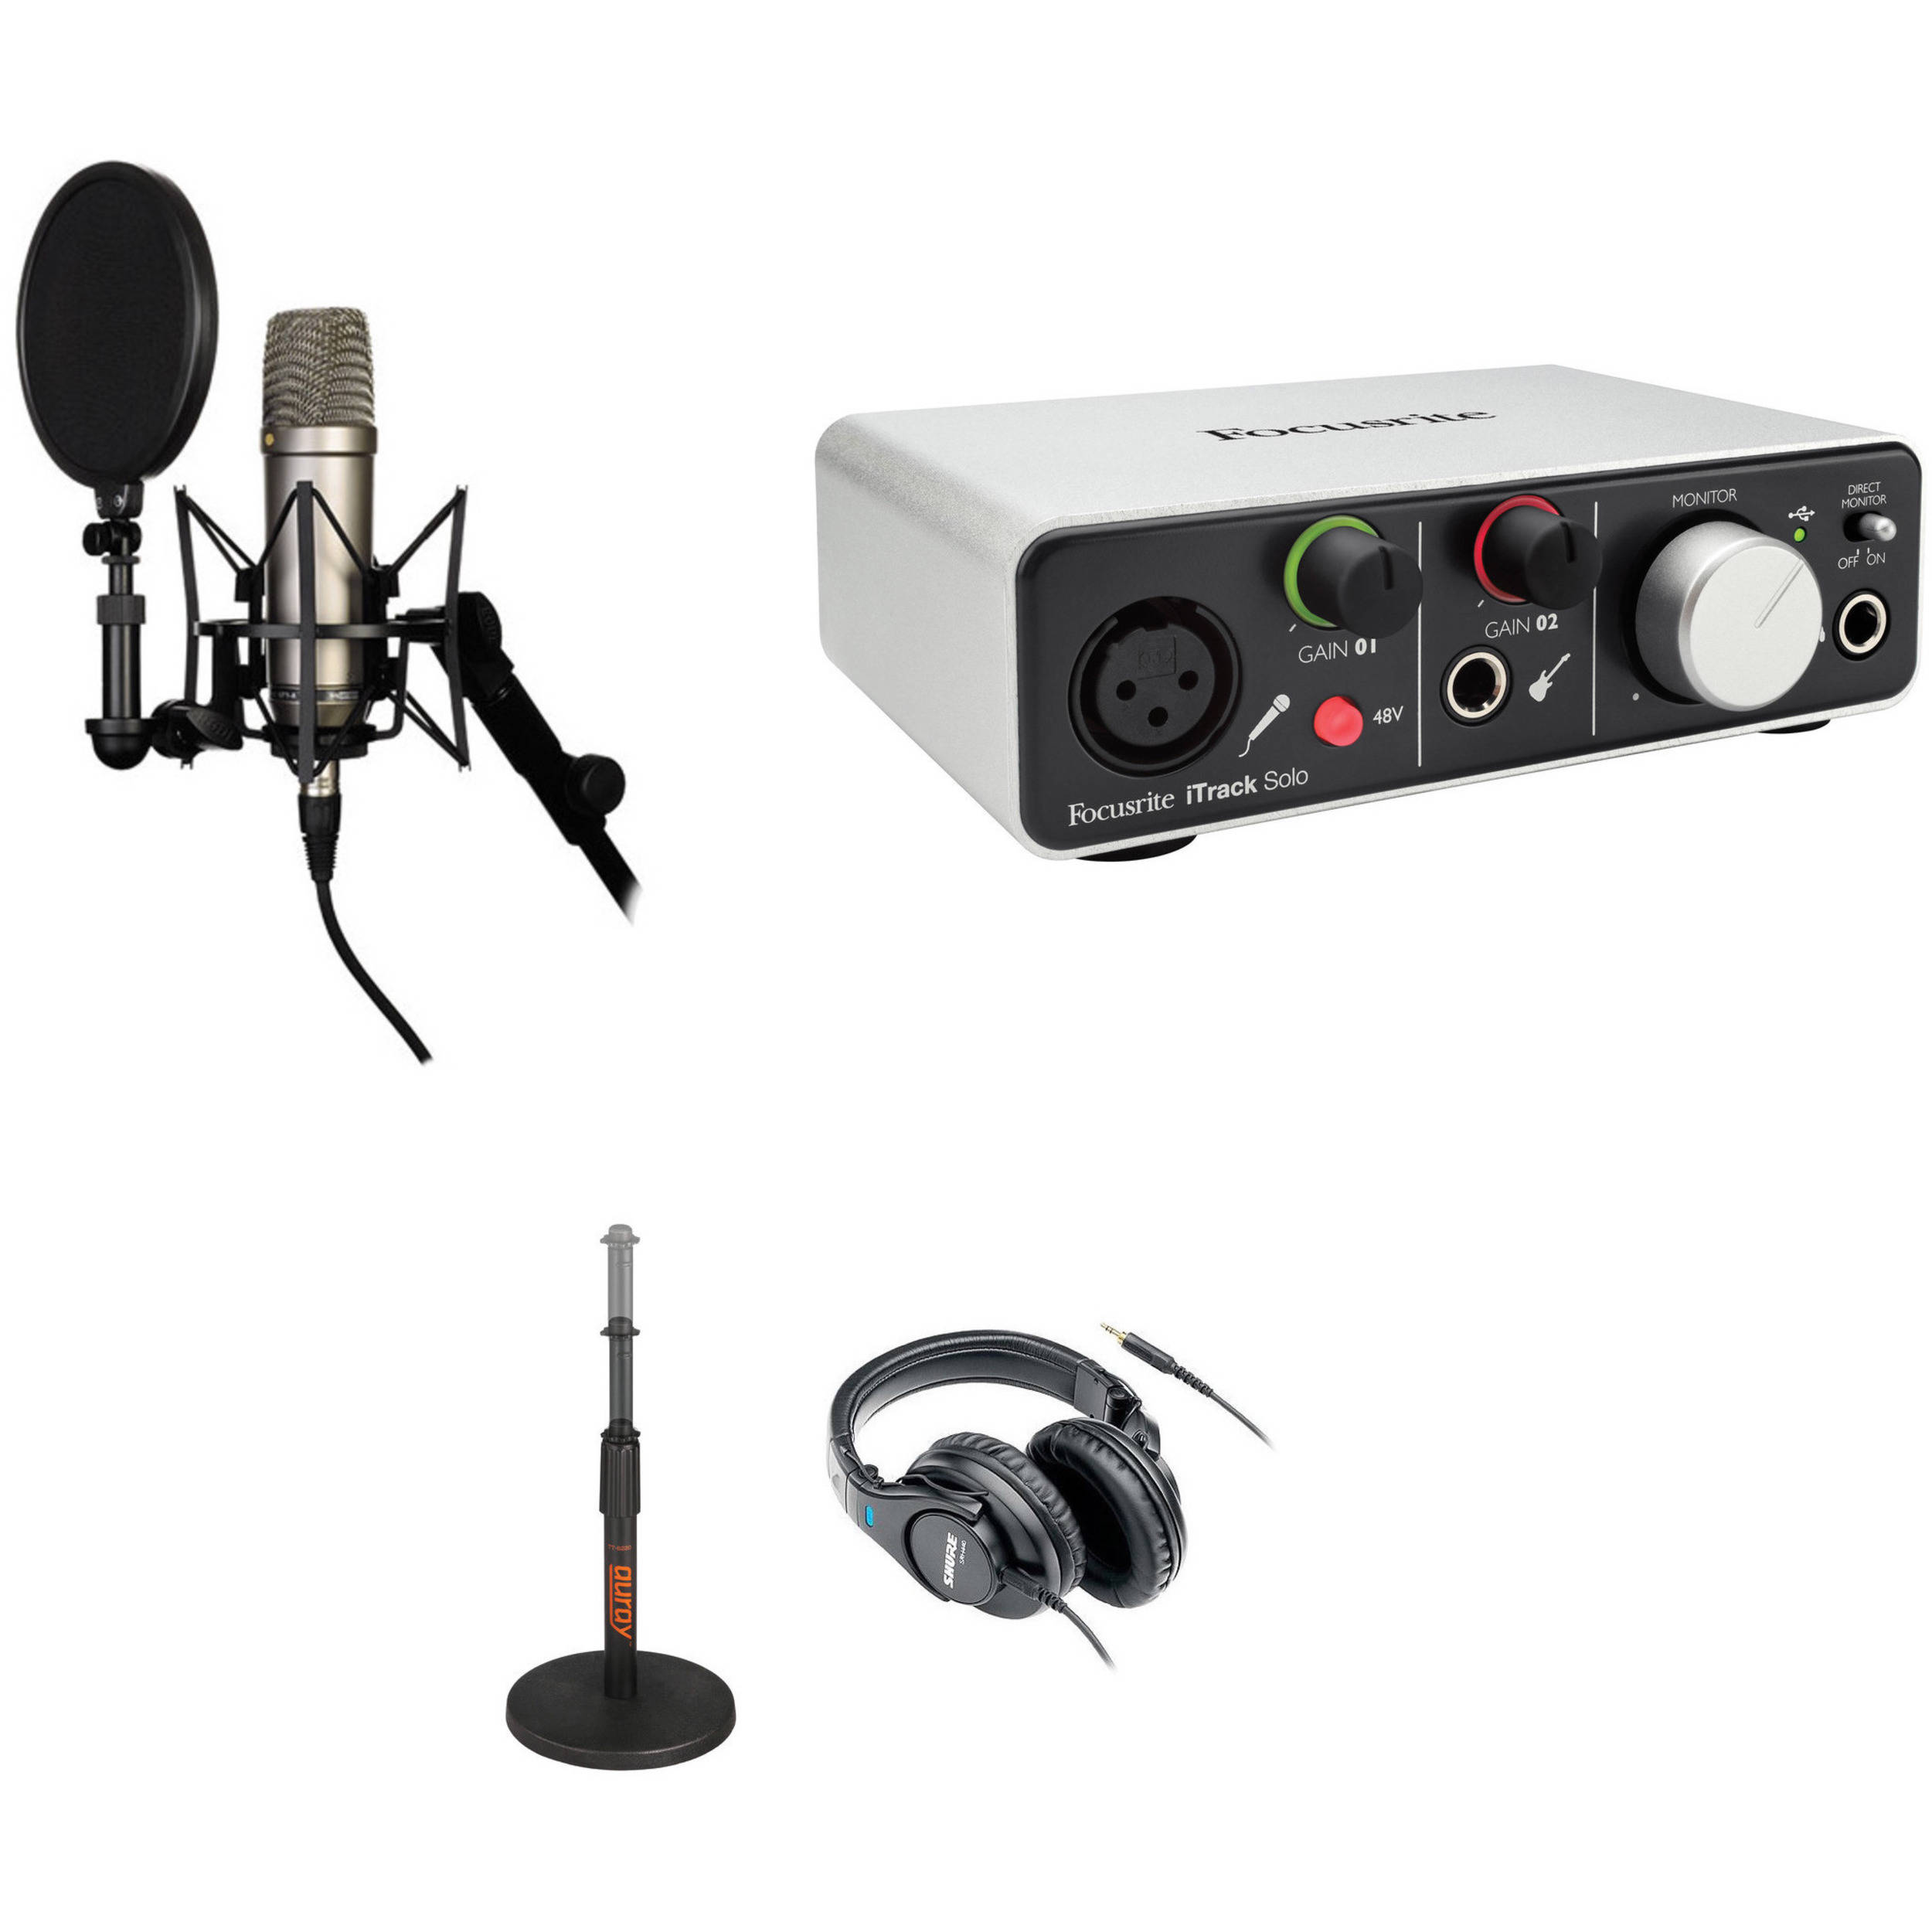 Rode NT1-A Recording Studio Kit with USB   iOS Lightning Audio Interface 838b695d5c74